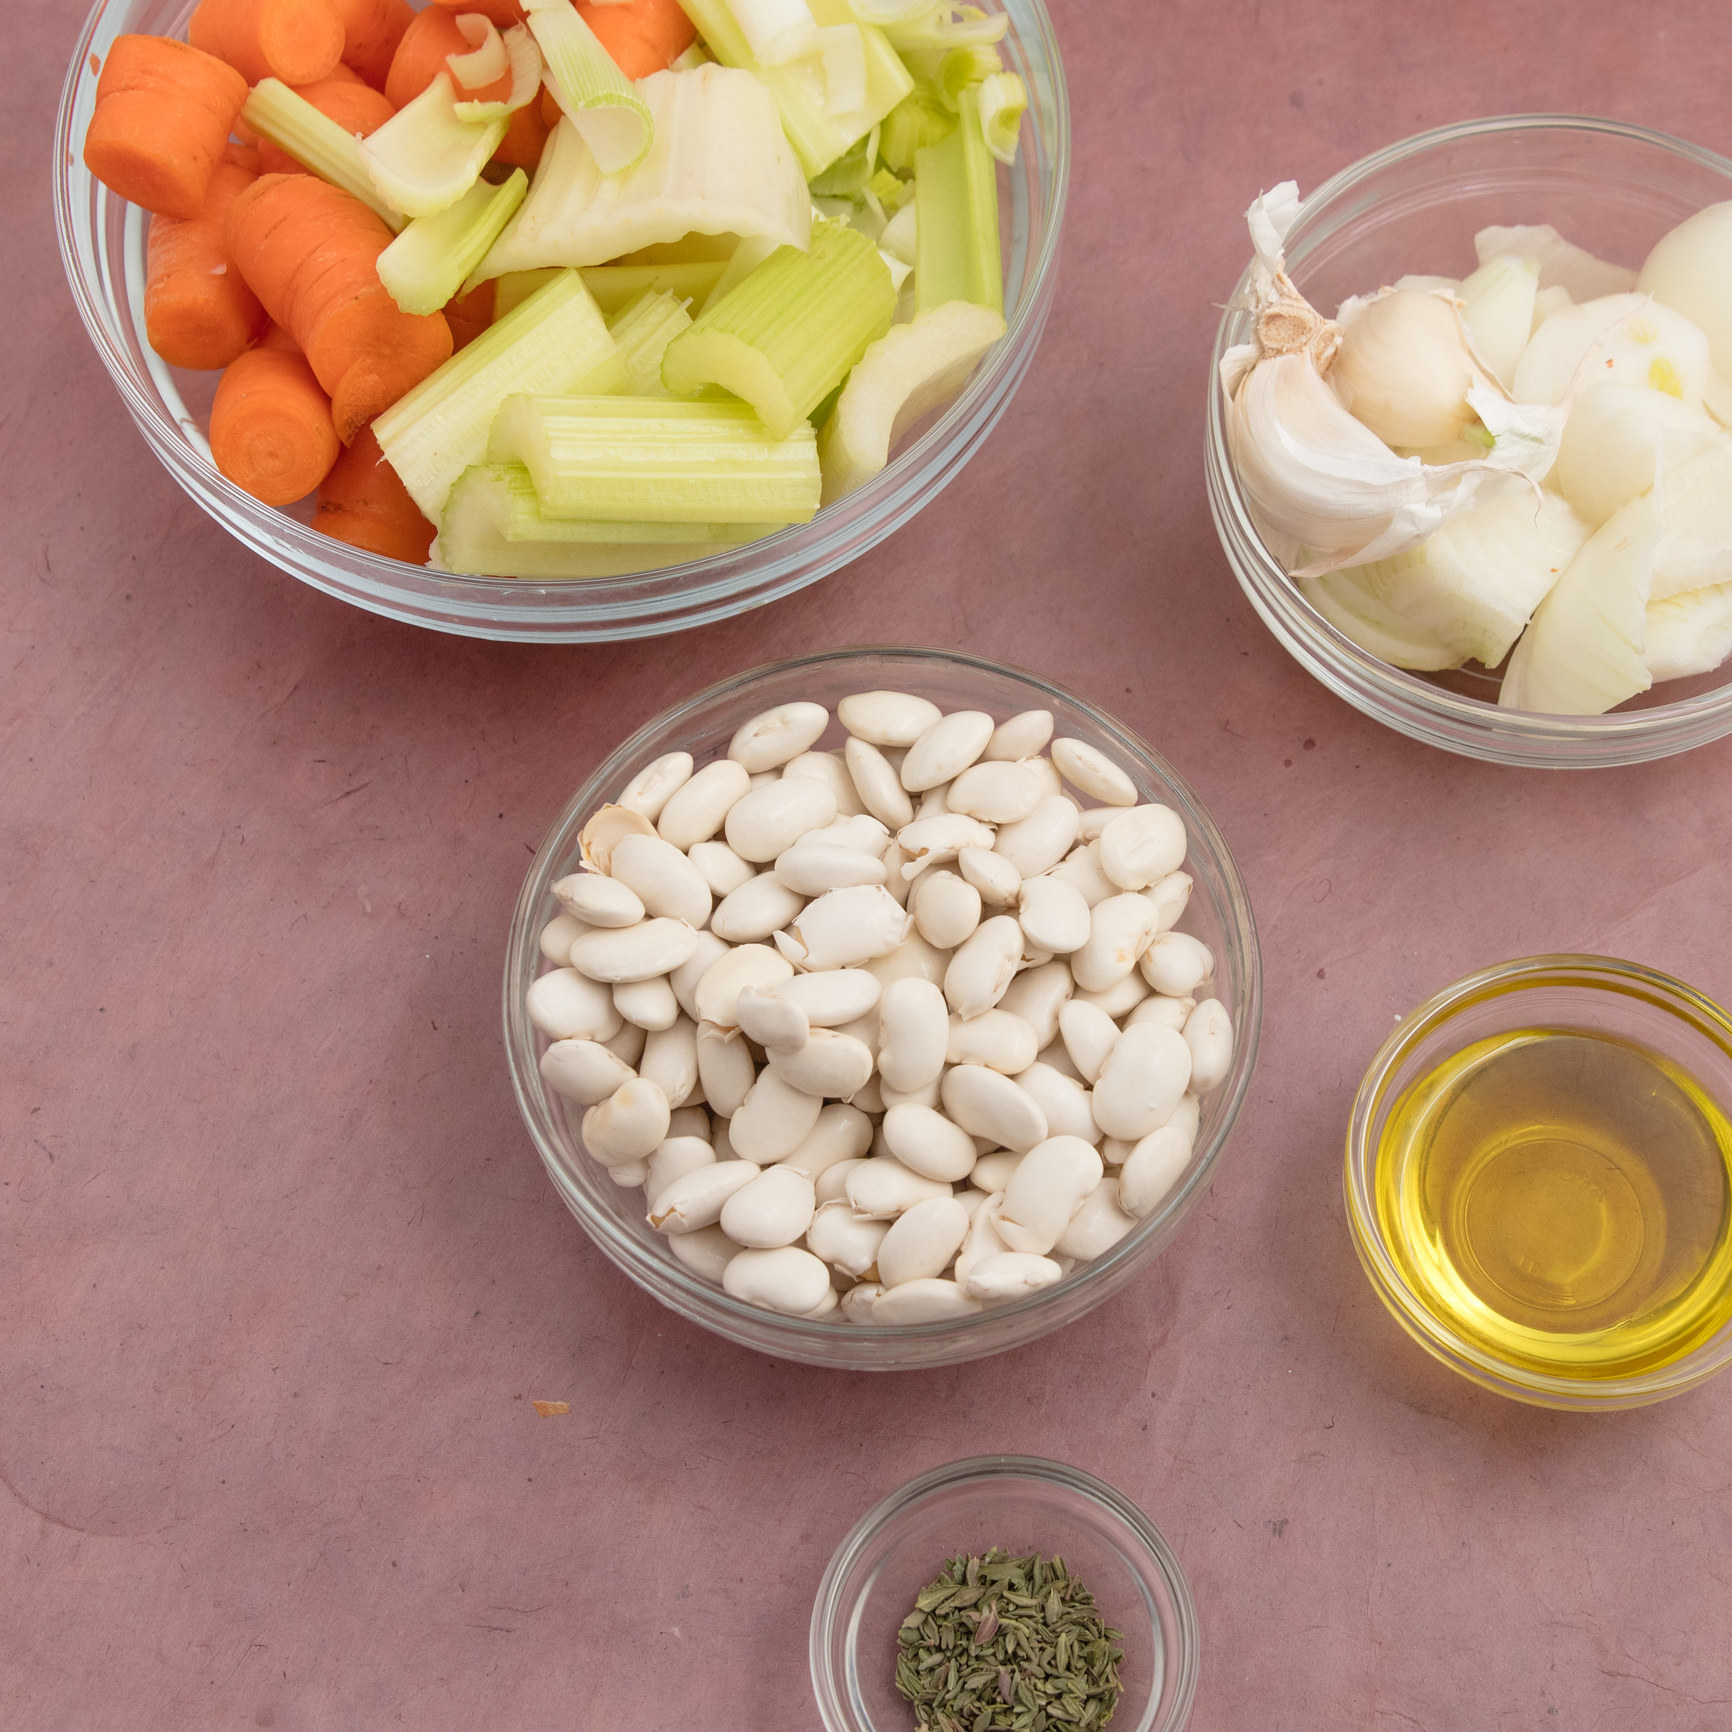 Beans, veggies, stock, oil, and spices in small bowls to make soup.